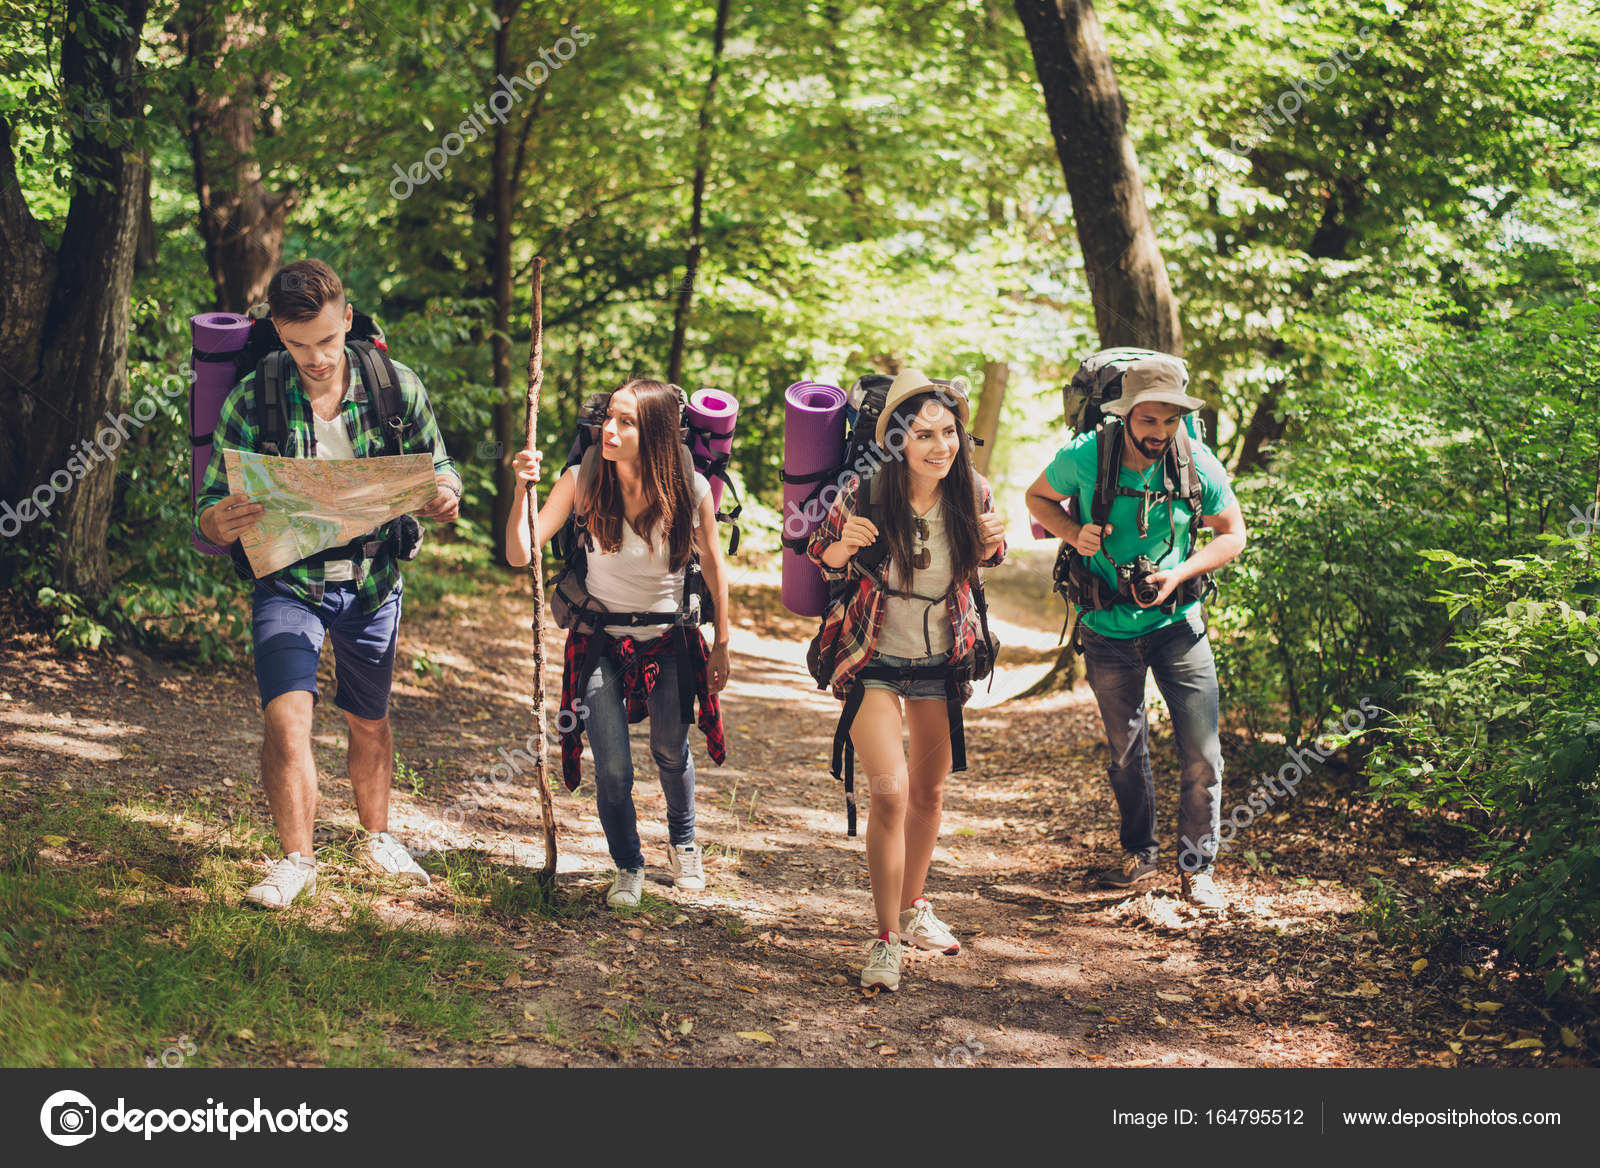 trekking camping and wild life concept four best friends are hiking in the spring woods people woods g11 camping